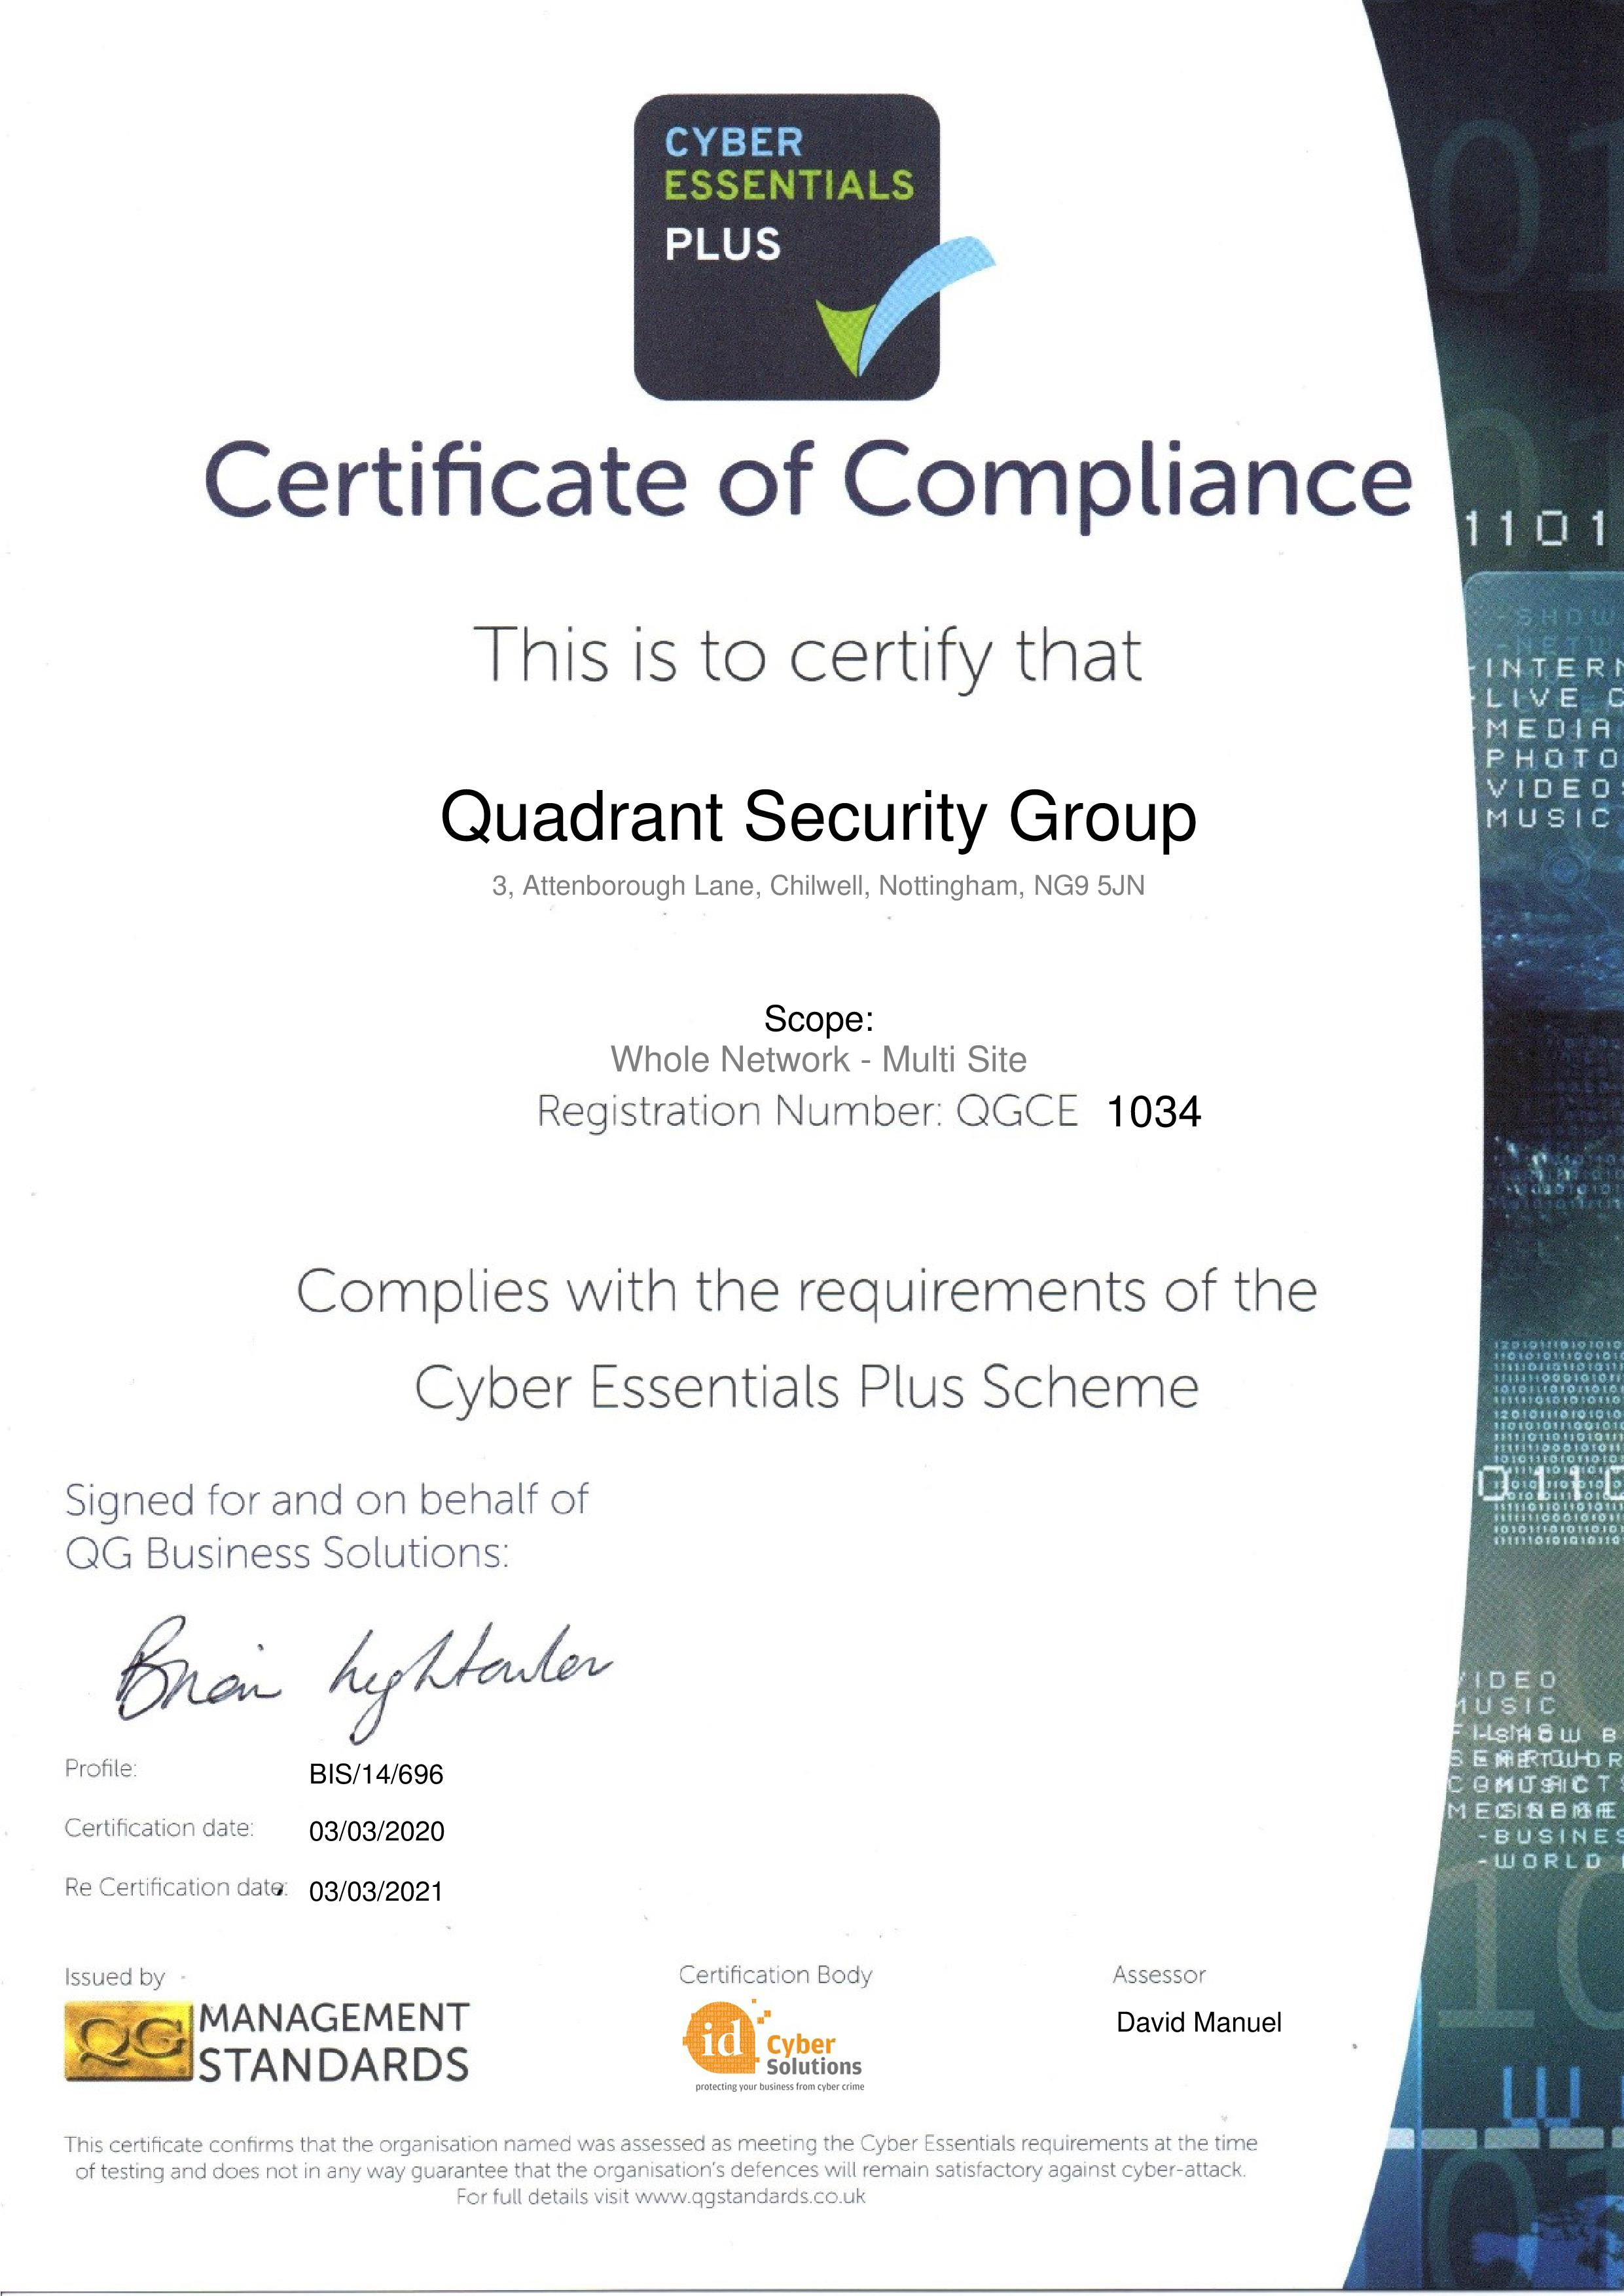 QGCE1034 Quadrant Security Group